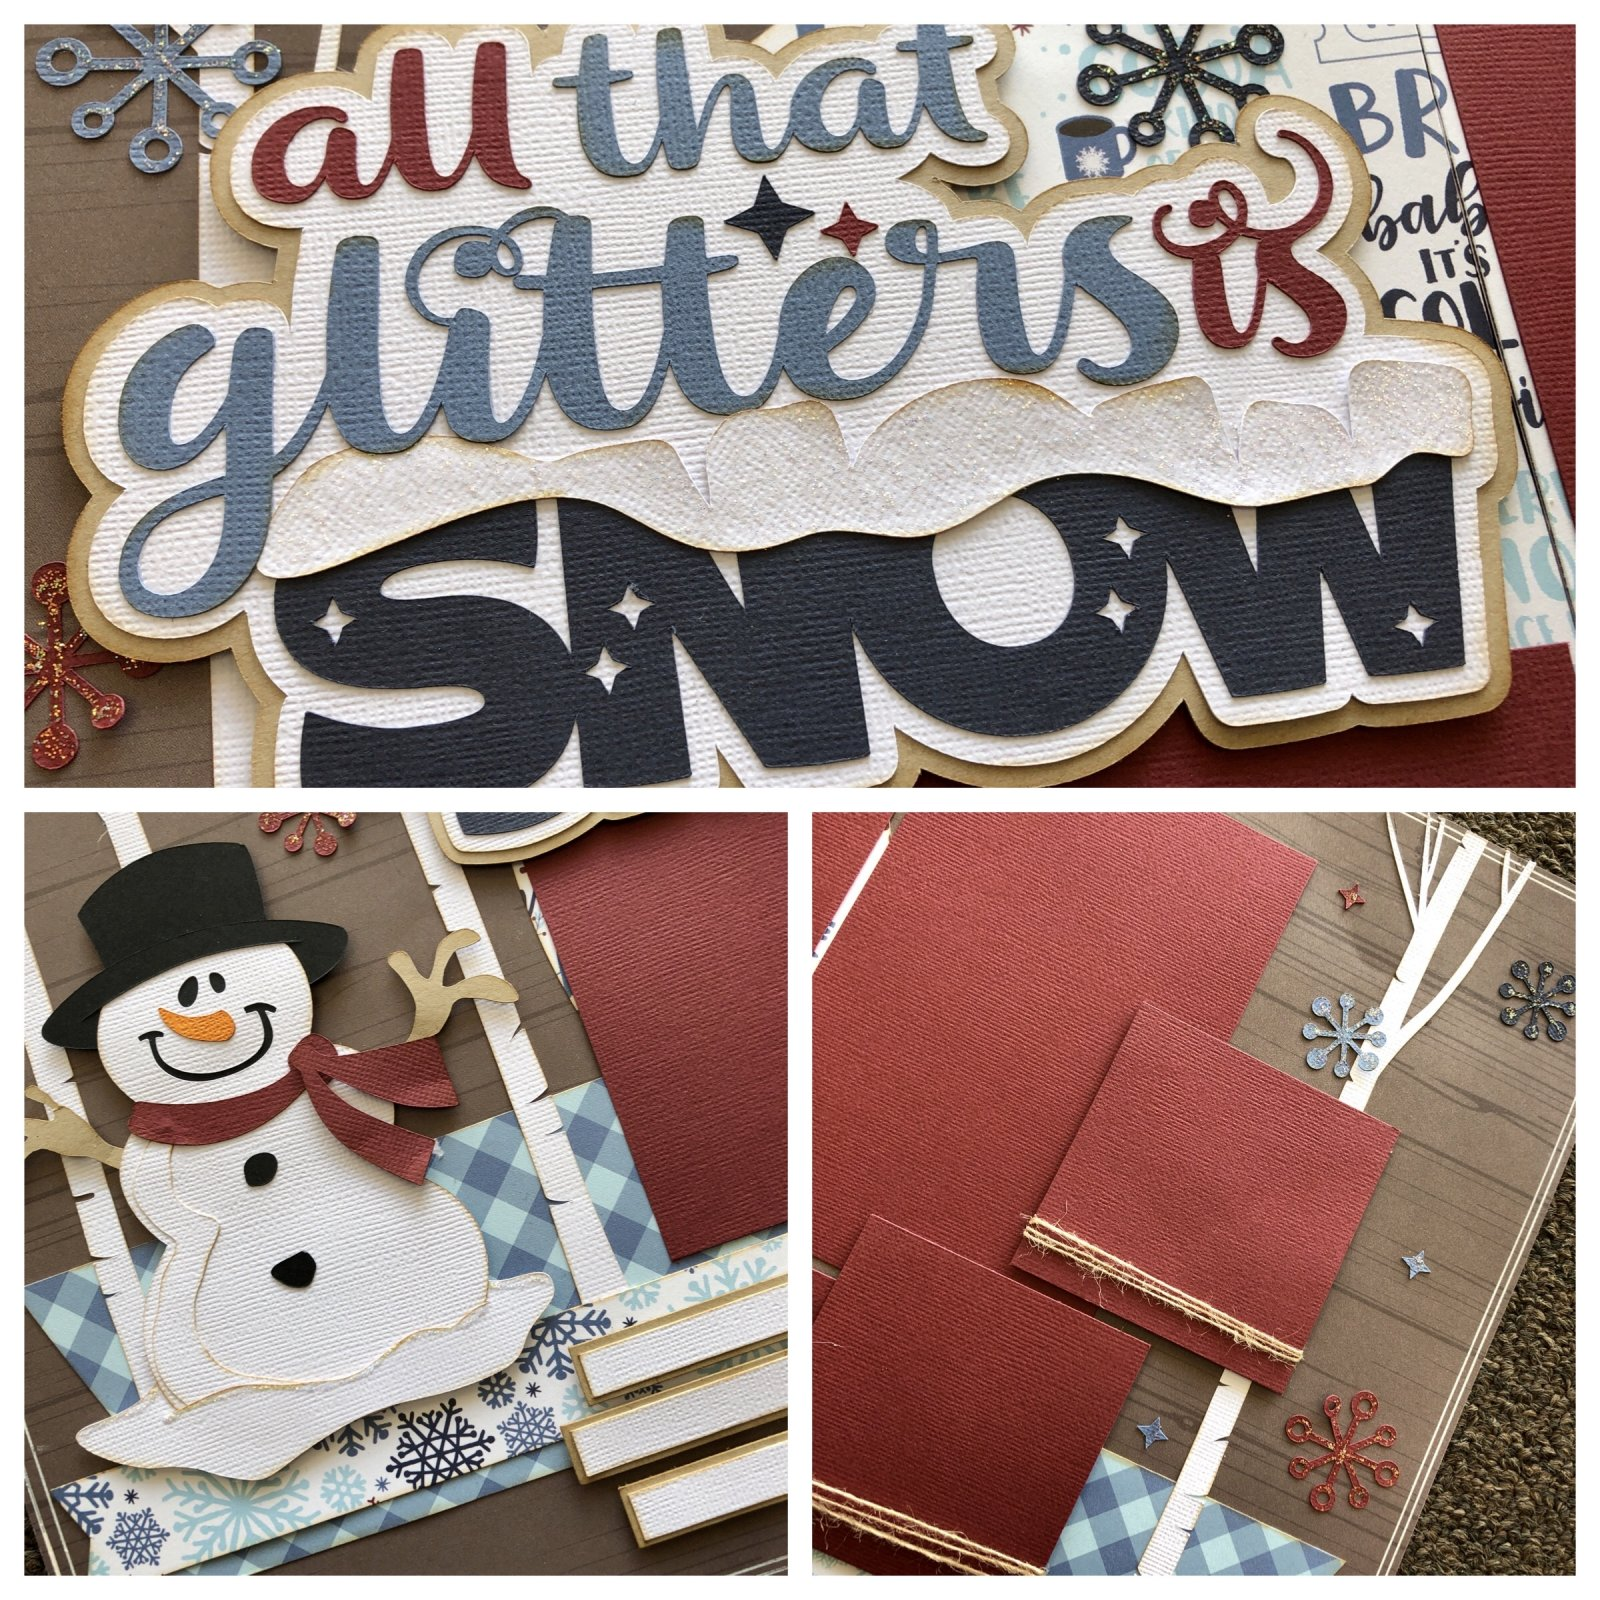 All That Glitters Is Snow Kit